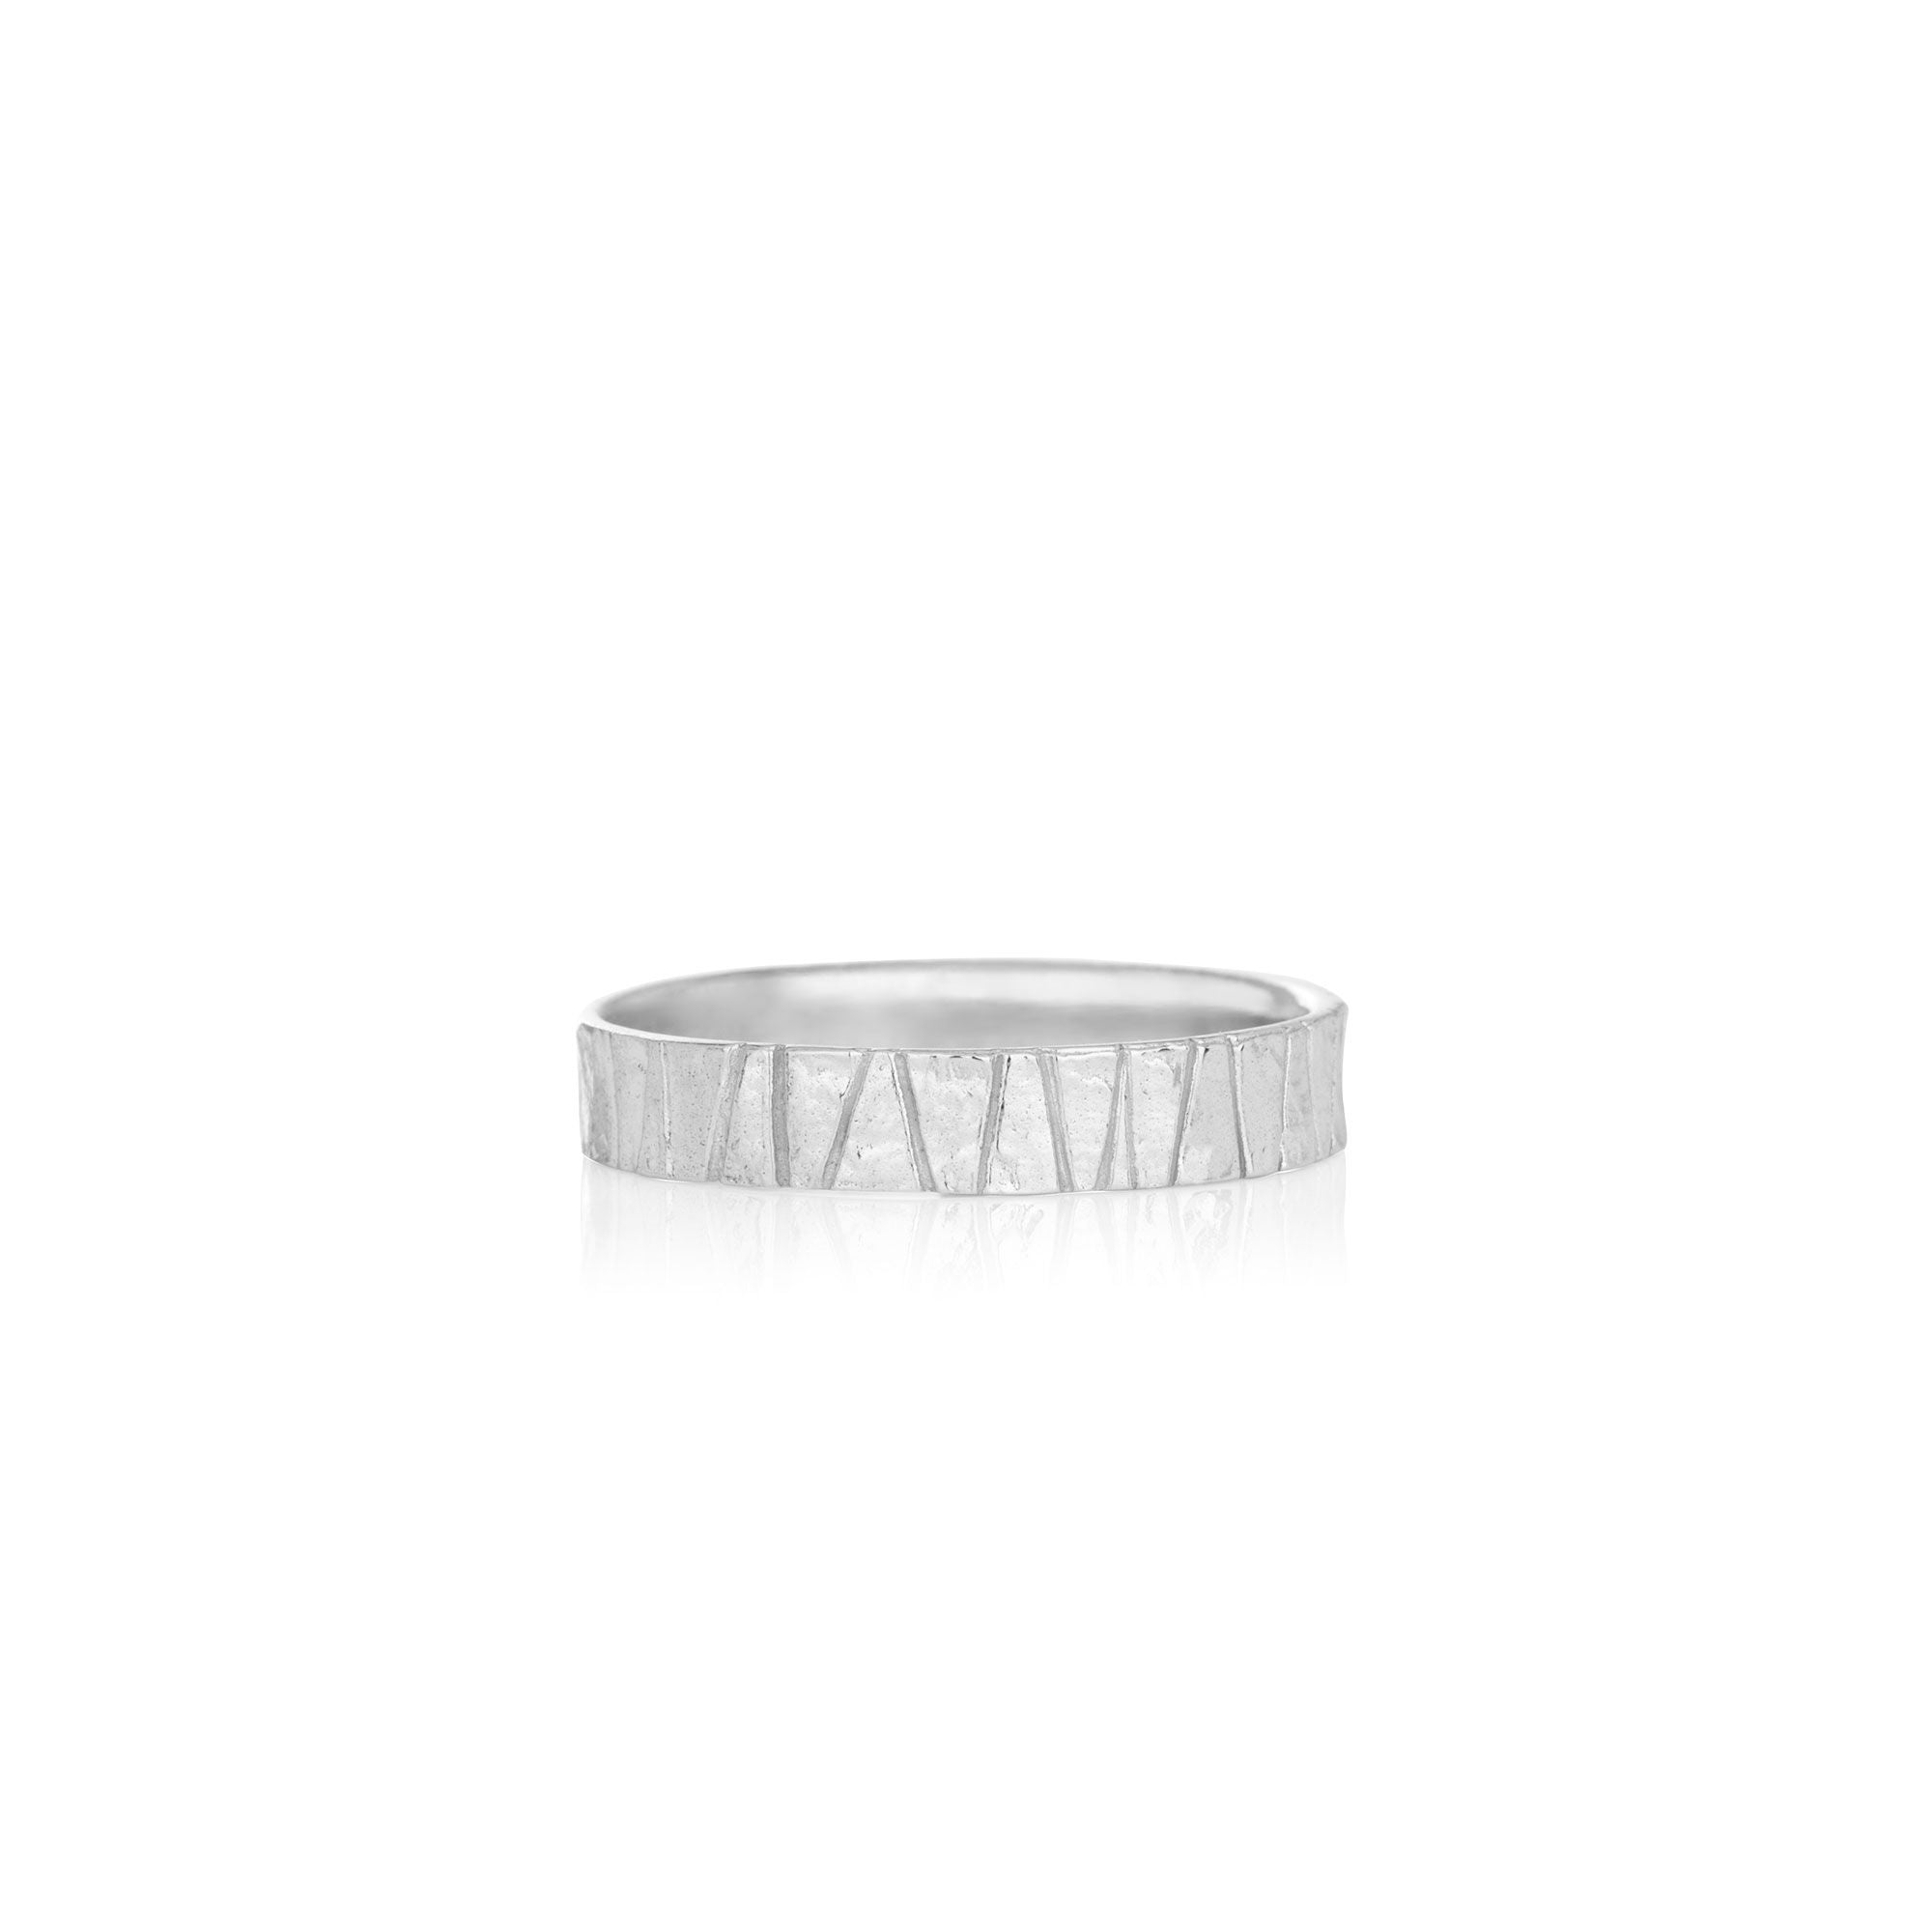 Men's wedding ring - TUTTU